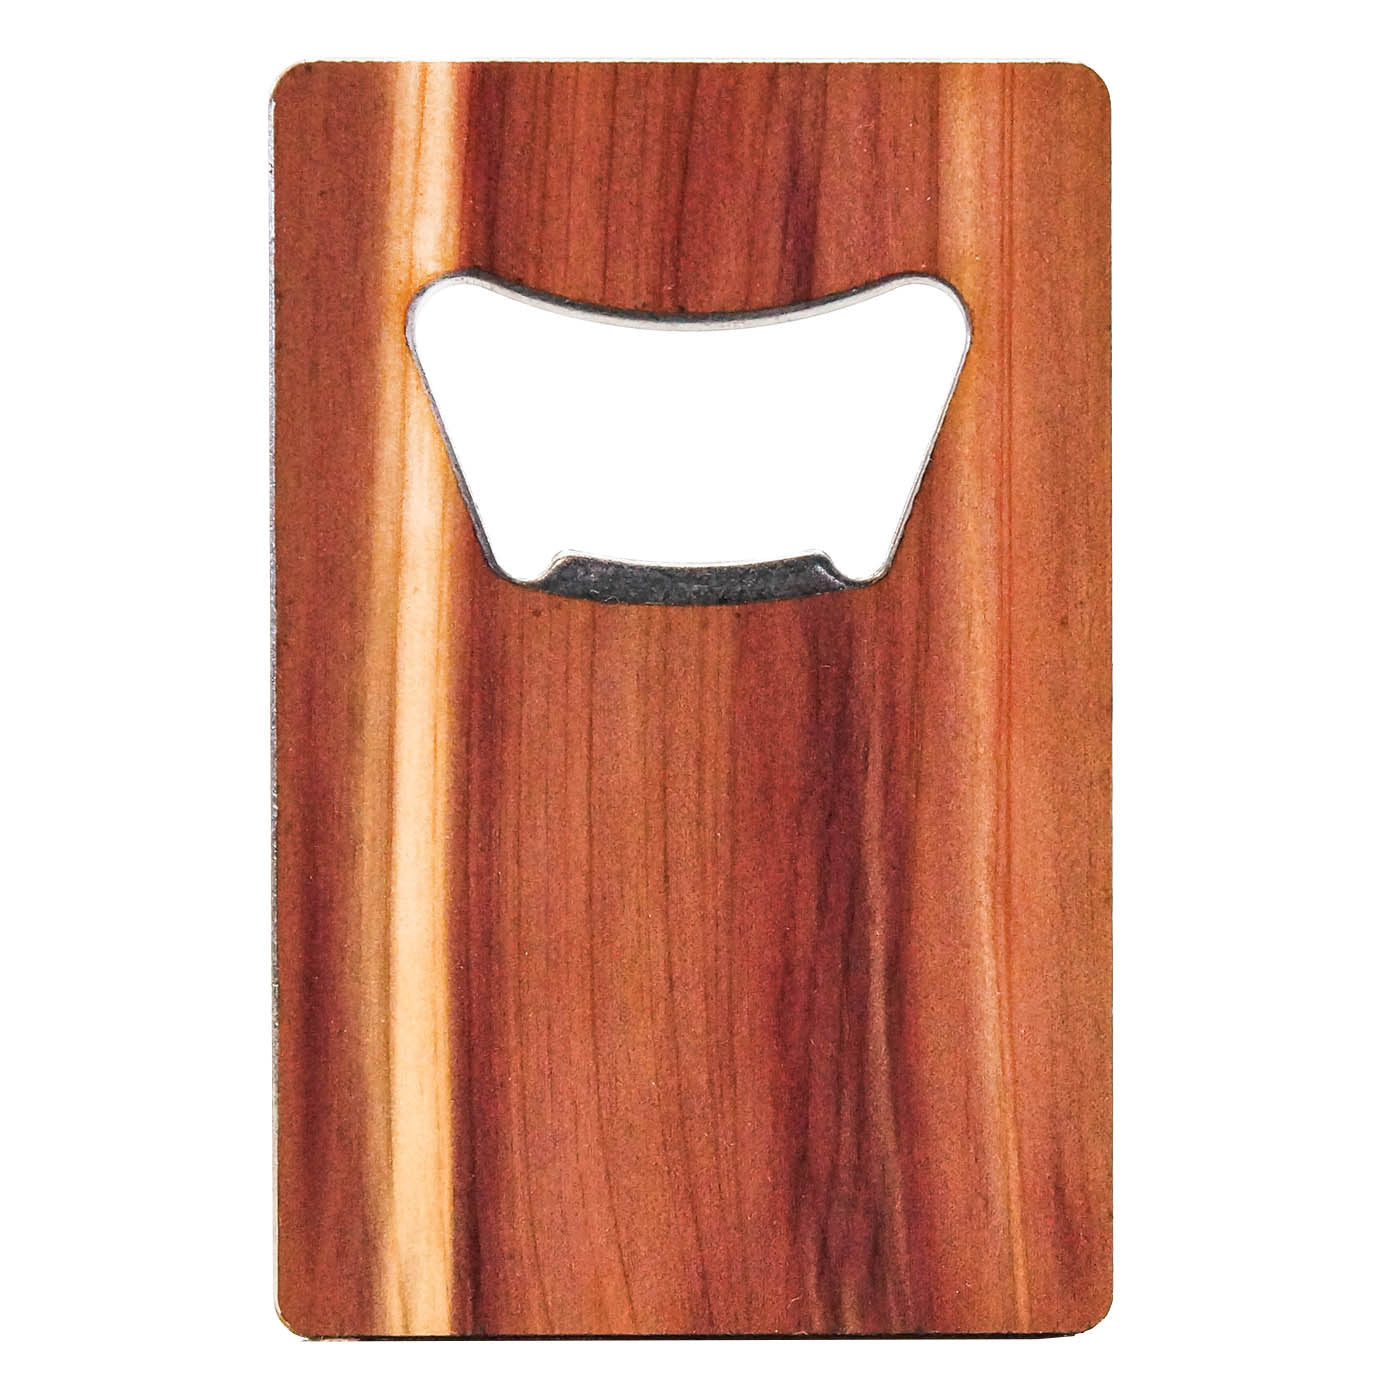 Customizable credit card bottle opener for Cedar credit